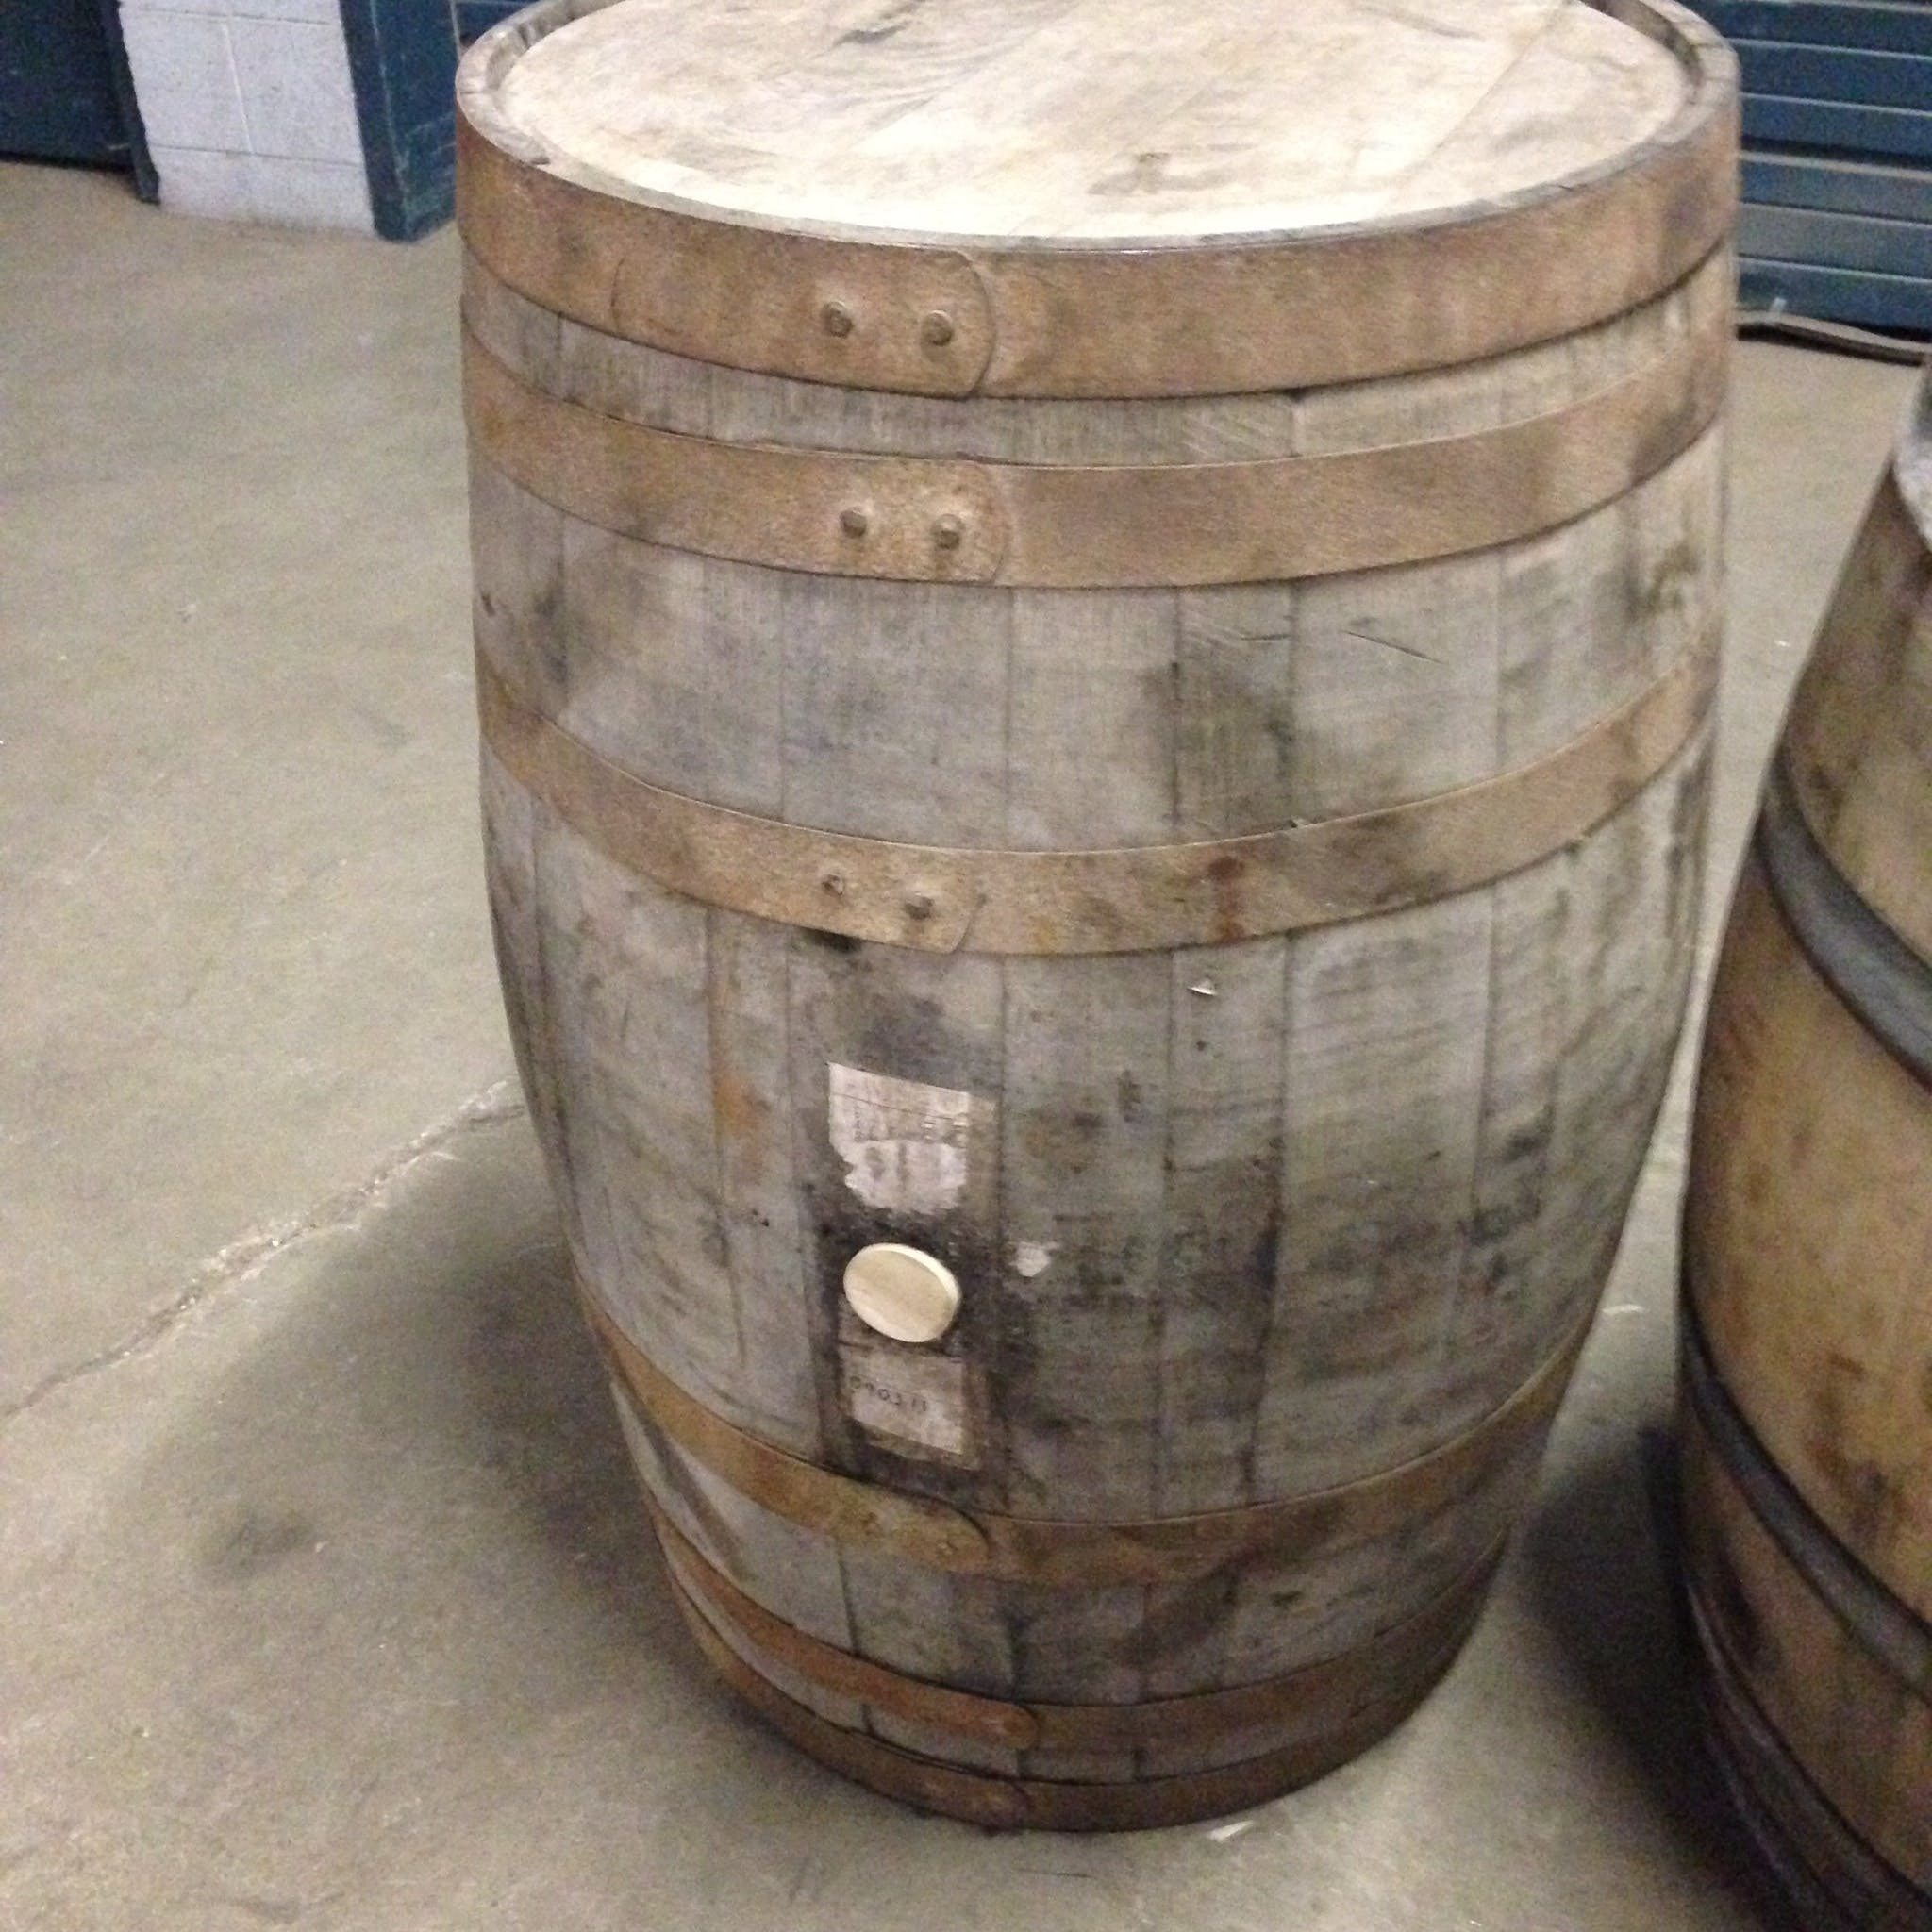 USED Tequila Barrel (200L/53-gal) - USED Tequila (Imported) - sold by Rocky Mountain Barrel Company